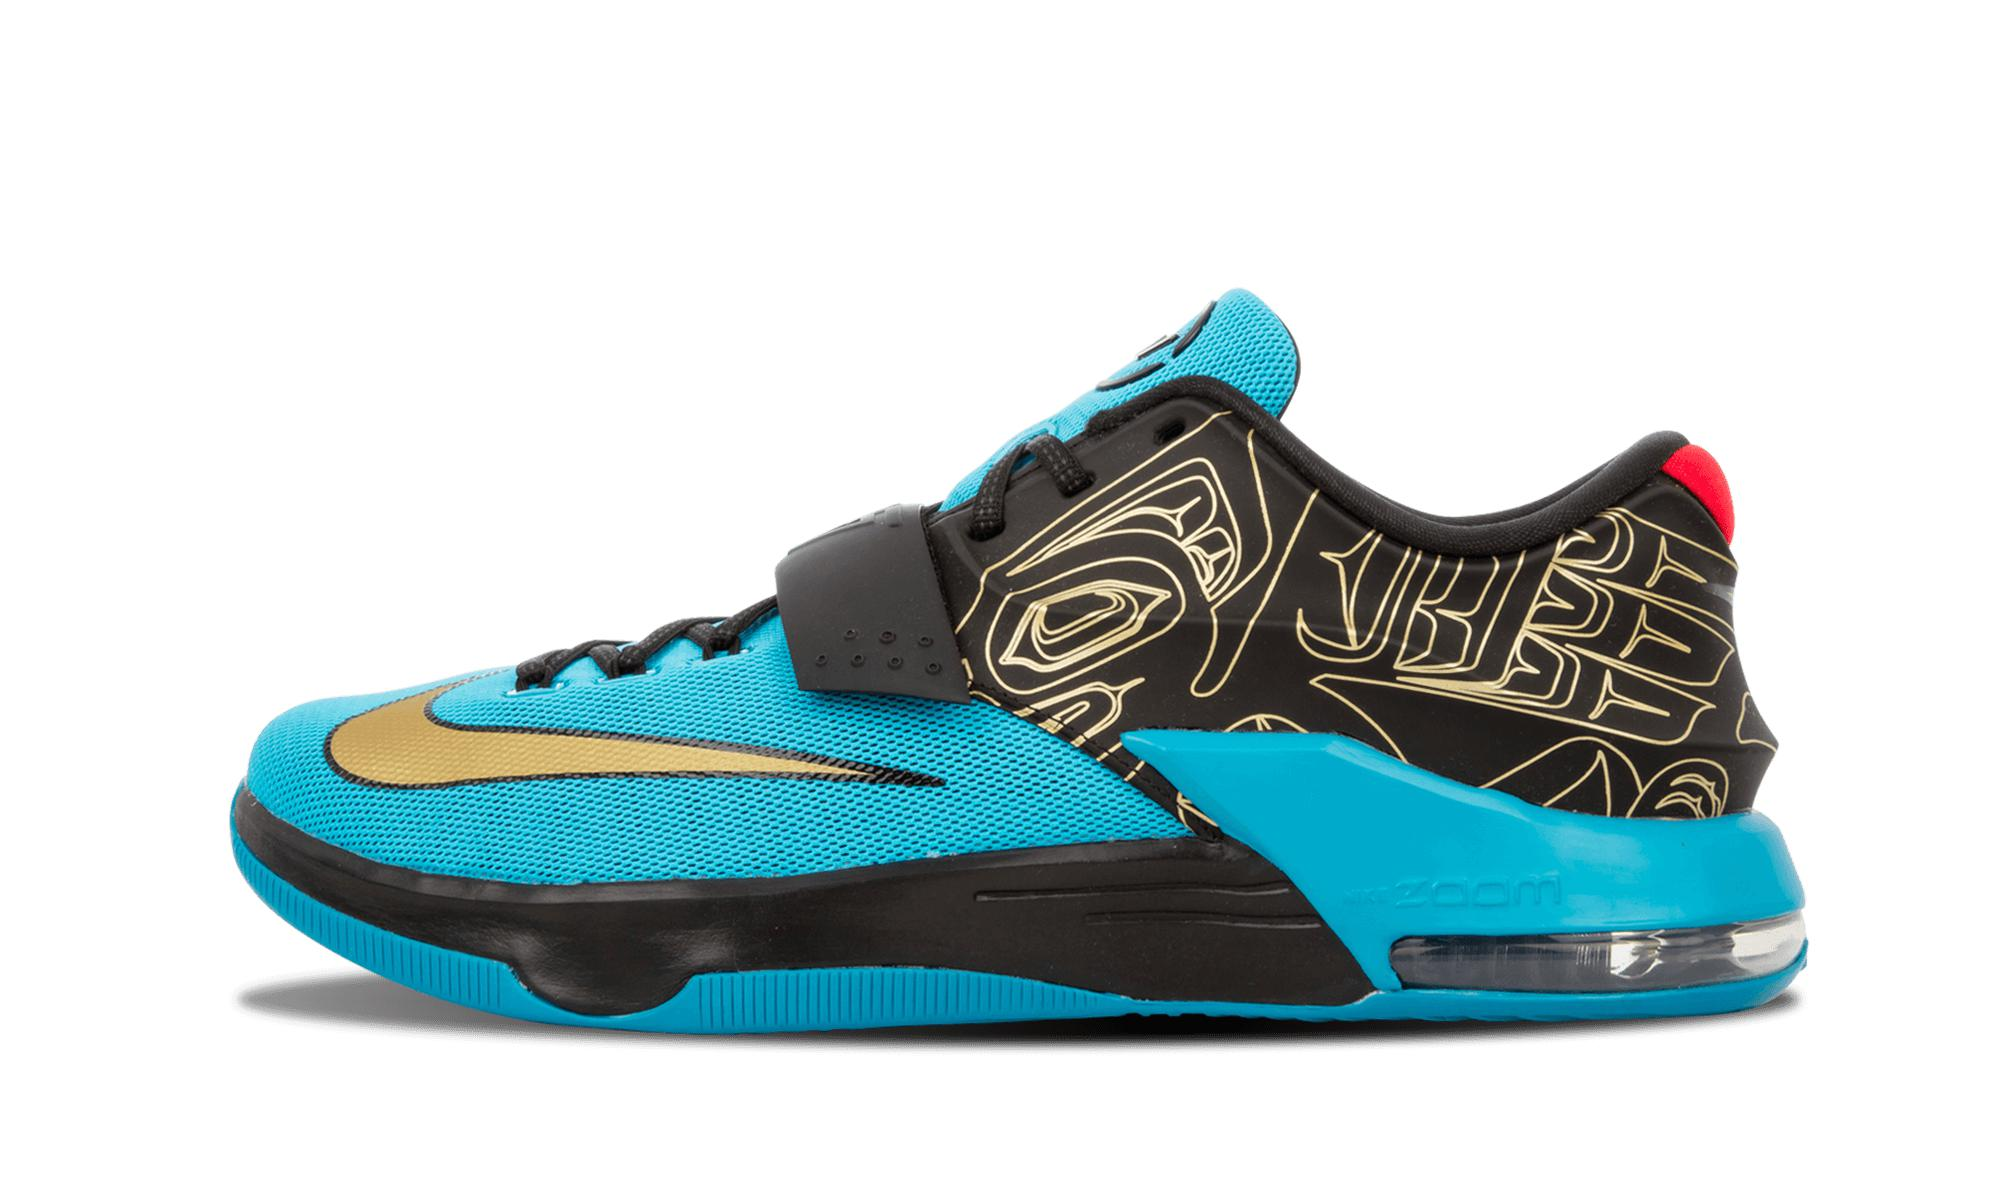 0069451e13ac Nike Kd Vii N7 in Blue for Men - Save 19% - Lyst